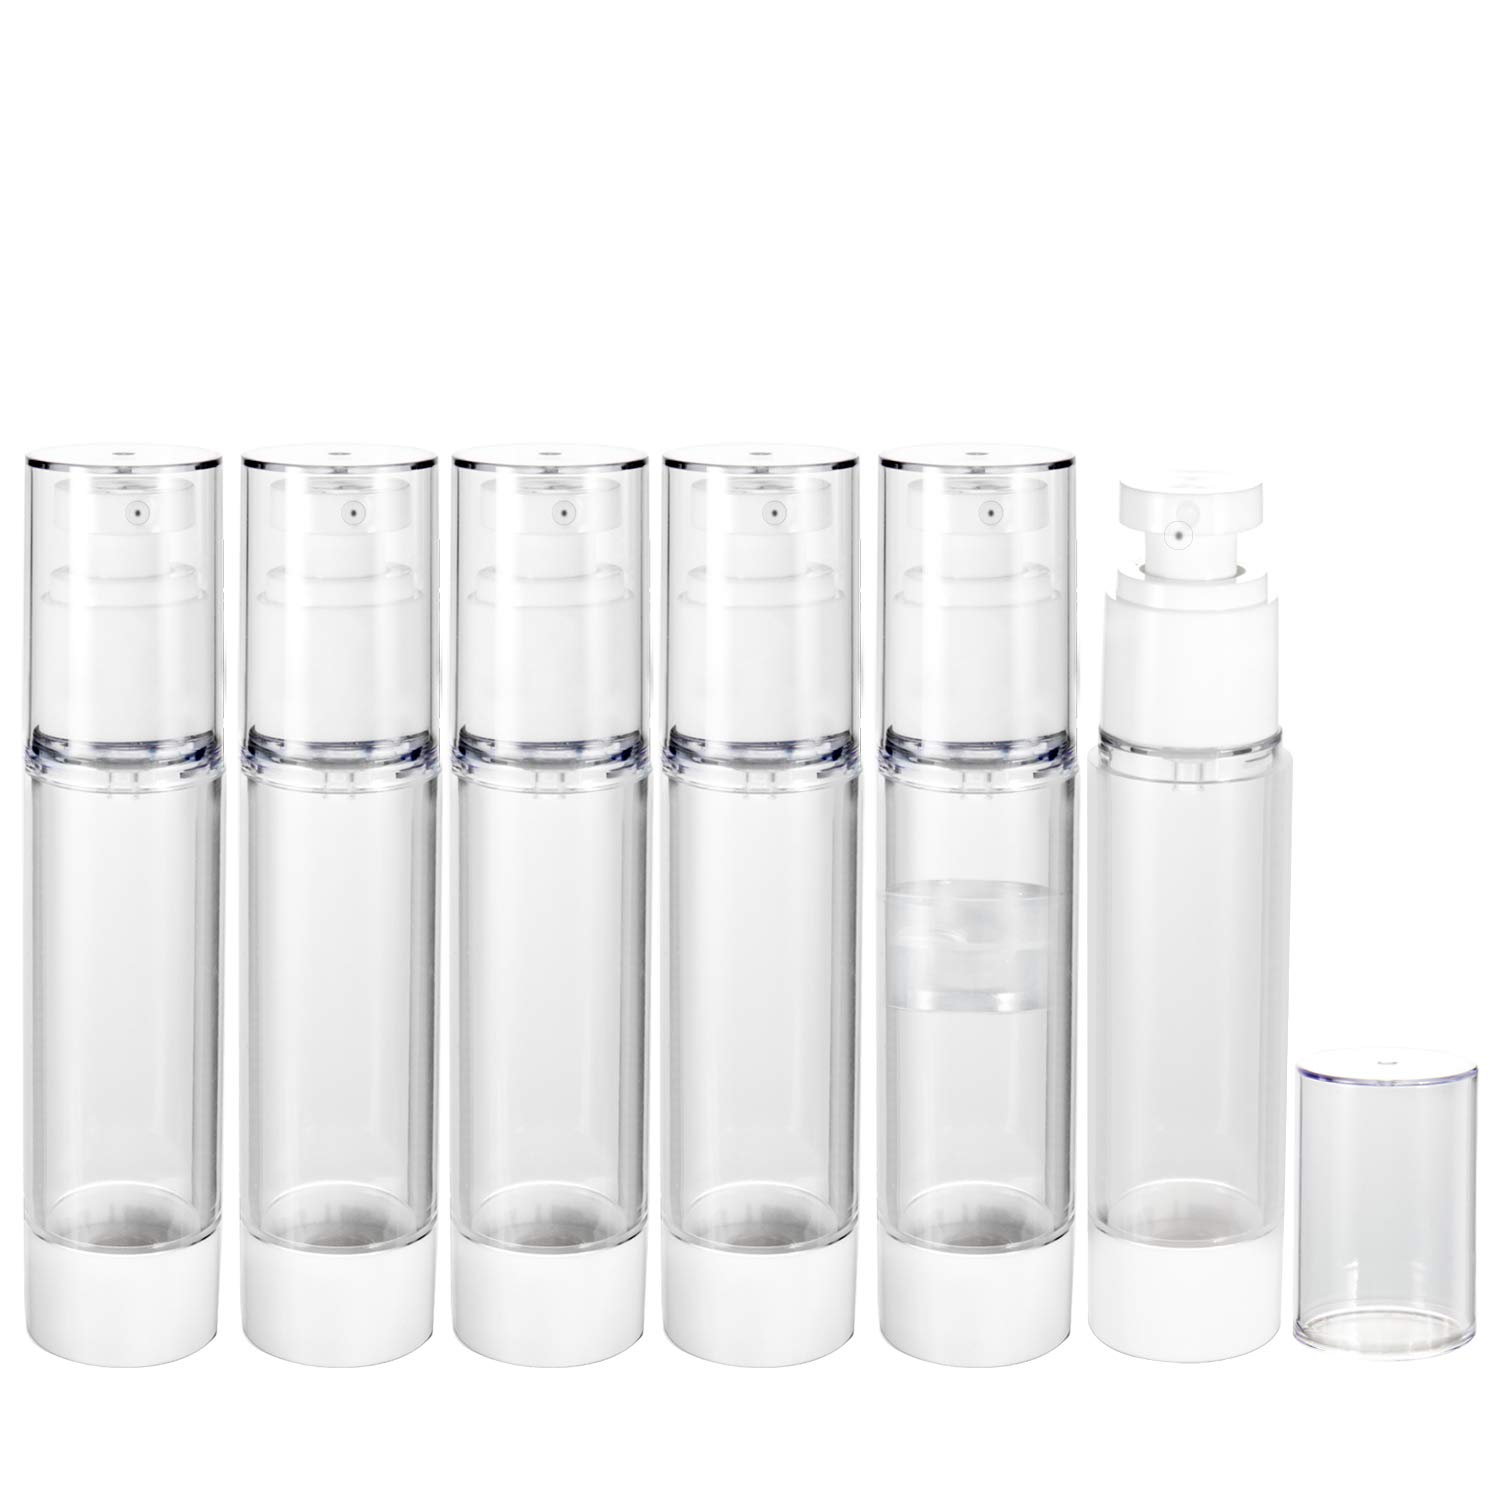 Spray Bottle, RUCKAE Airless Spray Bottle with Fine Mist Sprayer 6 Pack 1.7oz/50ml, Vacuum Travel Bottles Clear Refillable Container for Perfume, Toners, Soothing Water, Rose Water